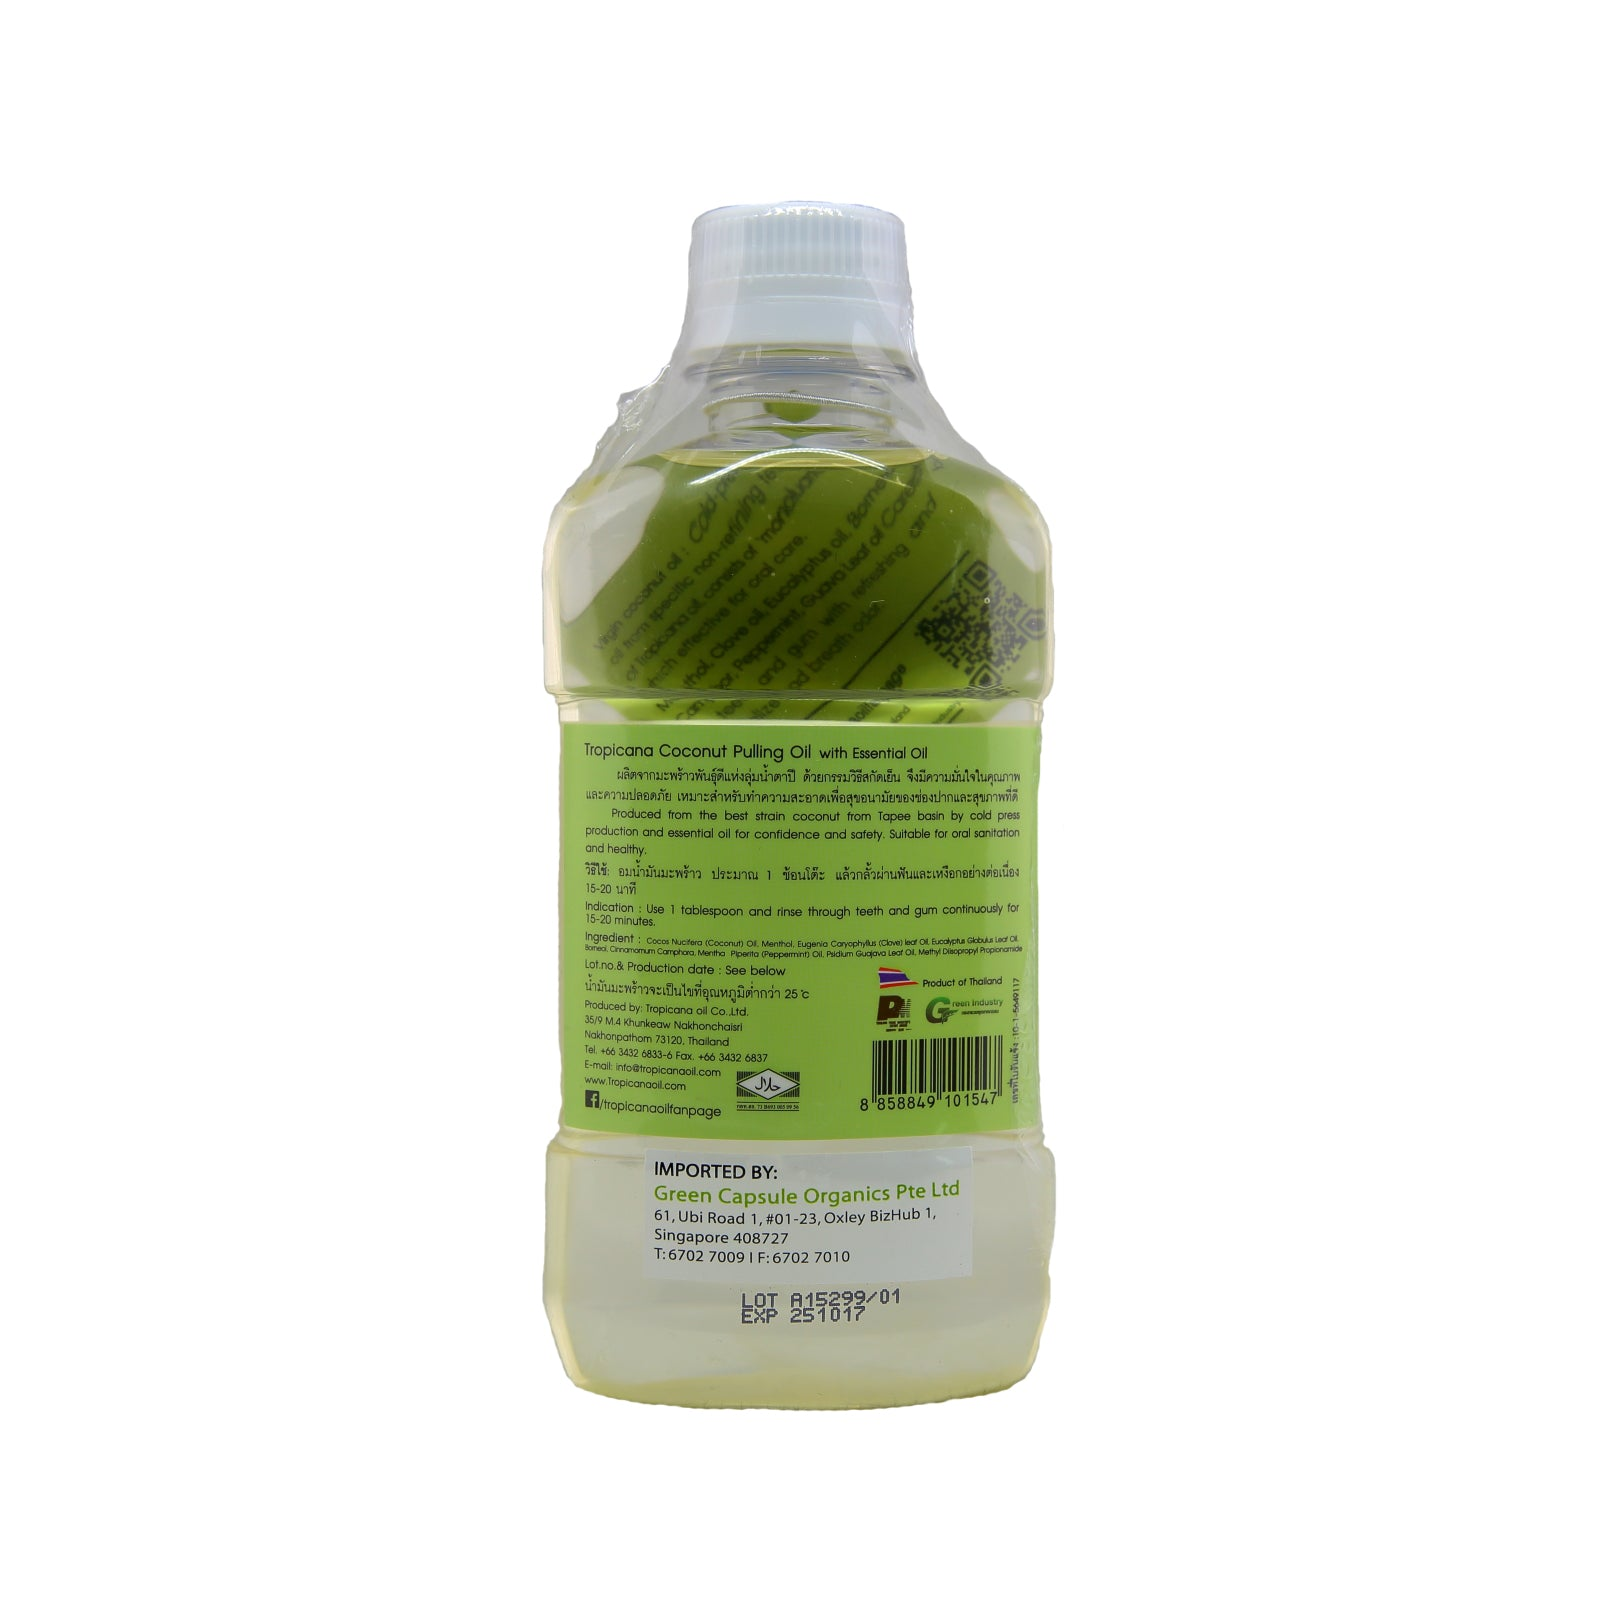 Tropicana Organic Cold Pressed.(Consumption)  Coconut Pulling Oil - Herbal - 250ml